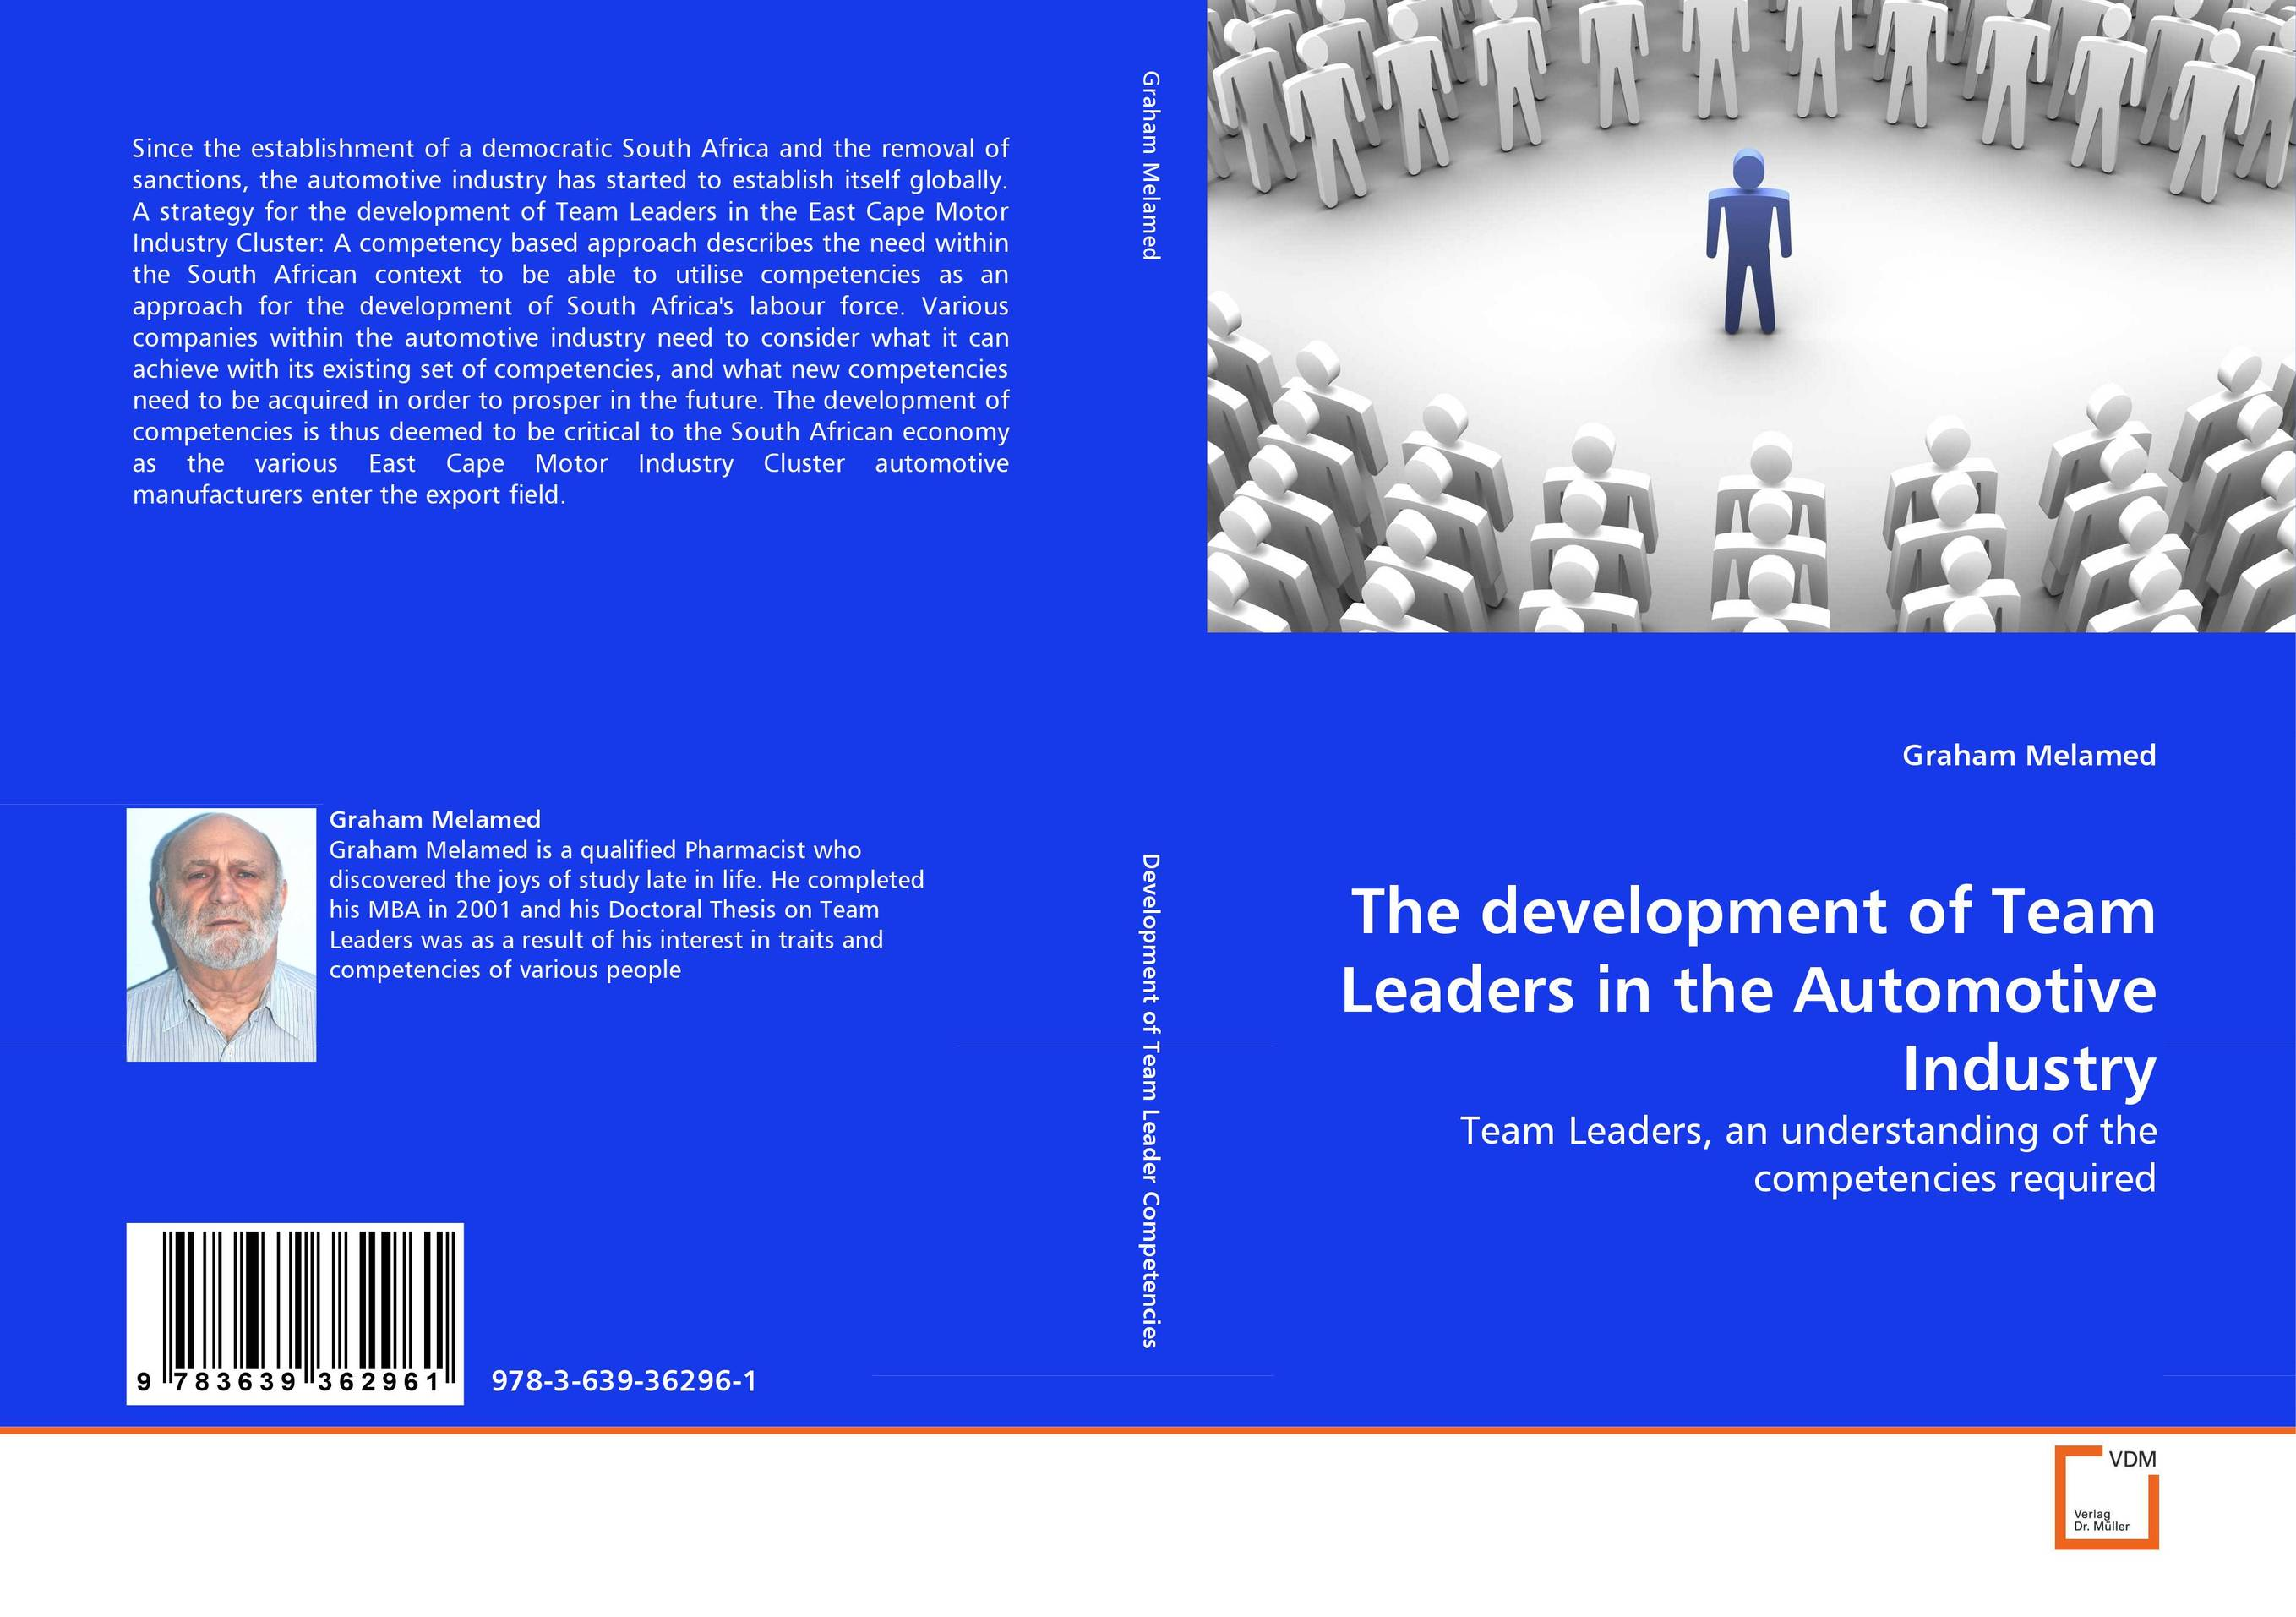 The development of Team Leaders in the Automotive Industry